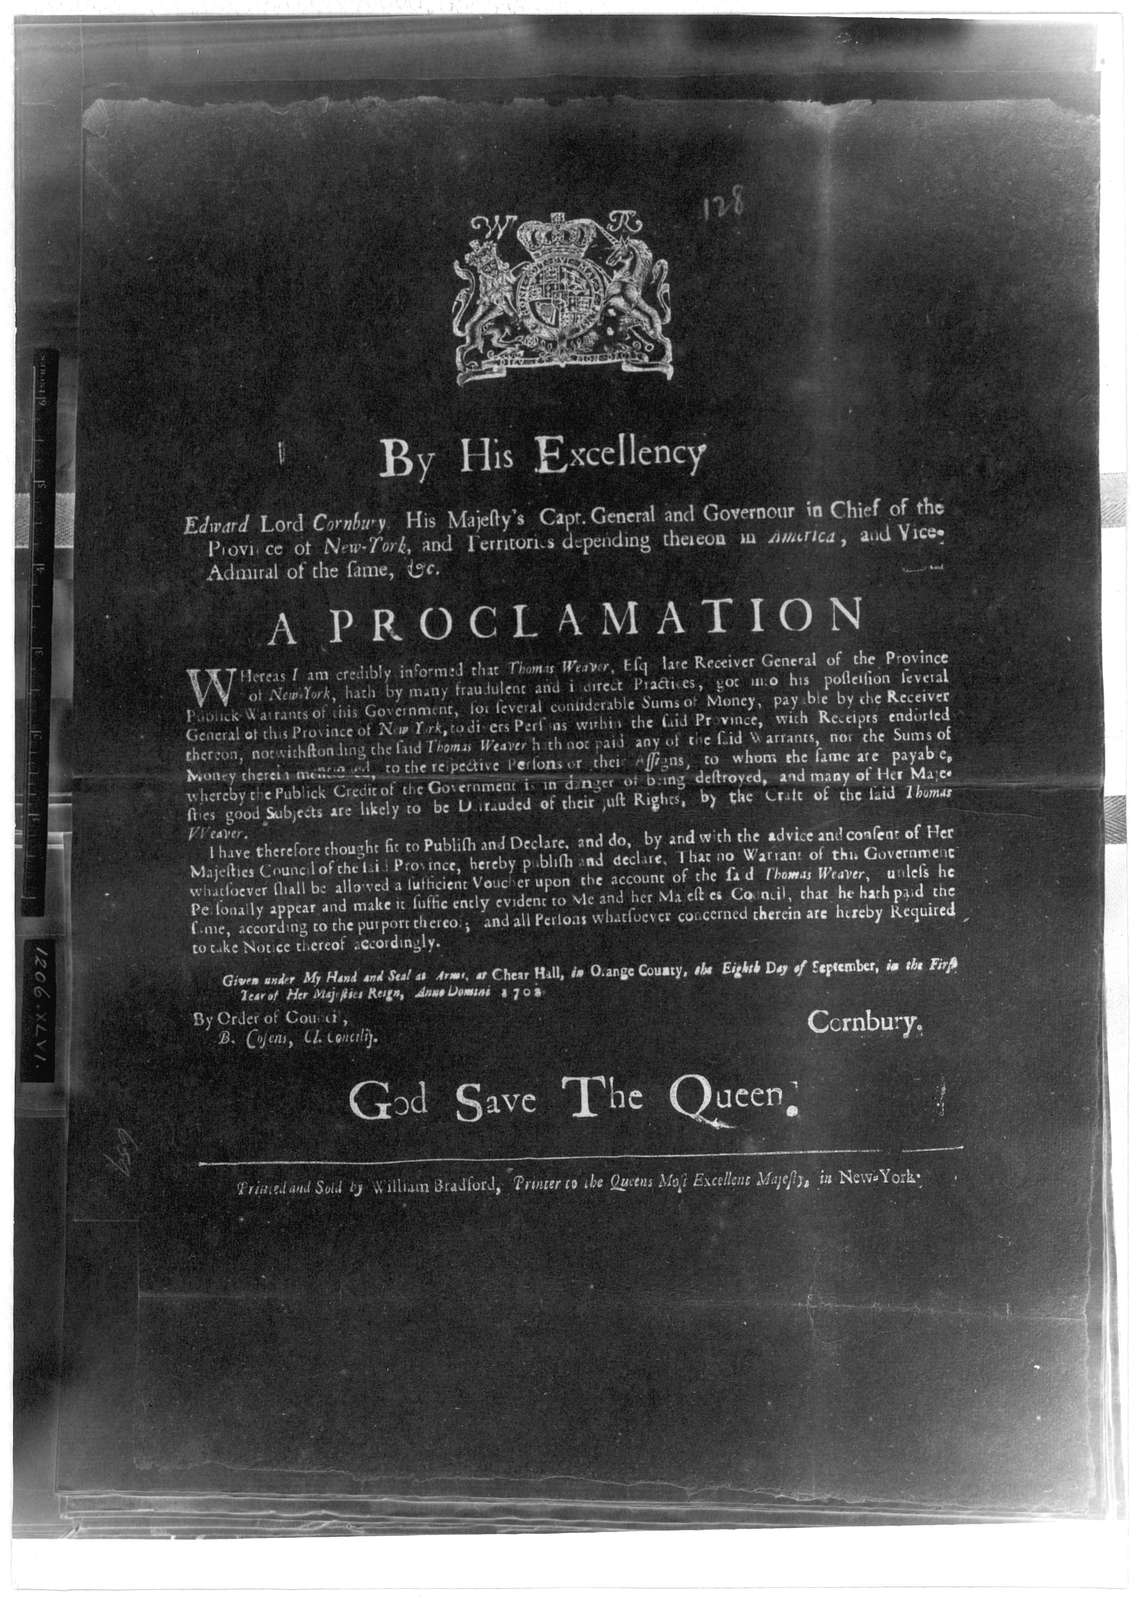 By His Excellency Edward Lord Cornbury, His Majesty's Capt. General and Governour in chief of the Province of New York ... A proclamation. Whereas I am credibly informed that Thomas Weaver Esq ... hath by many fraudulent and indirect practices,